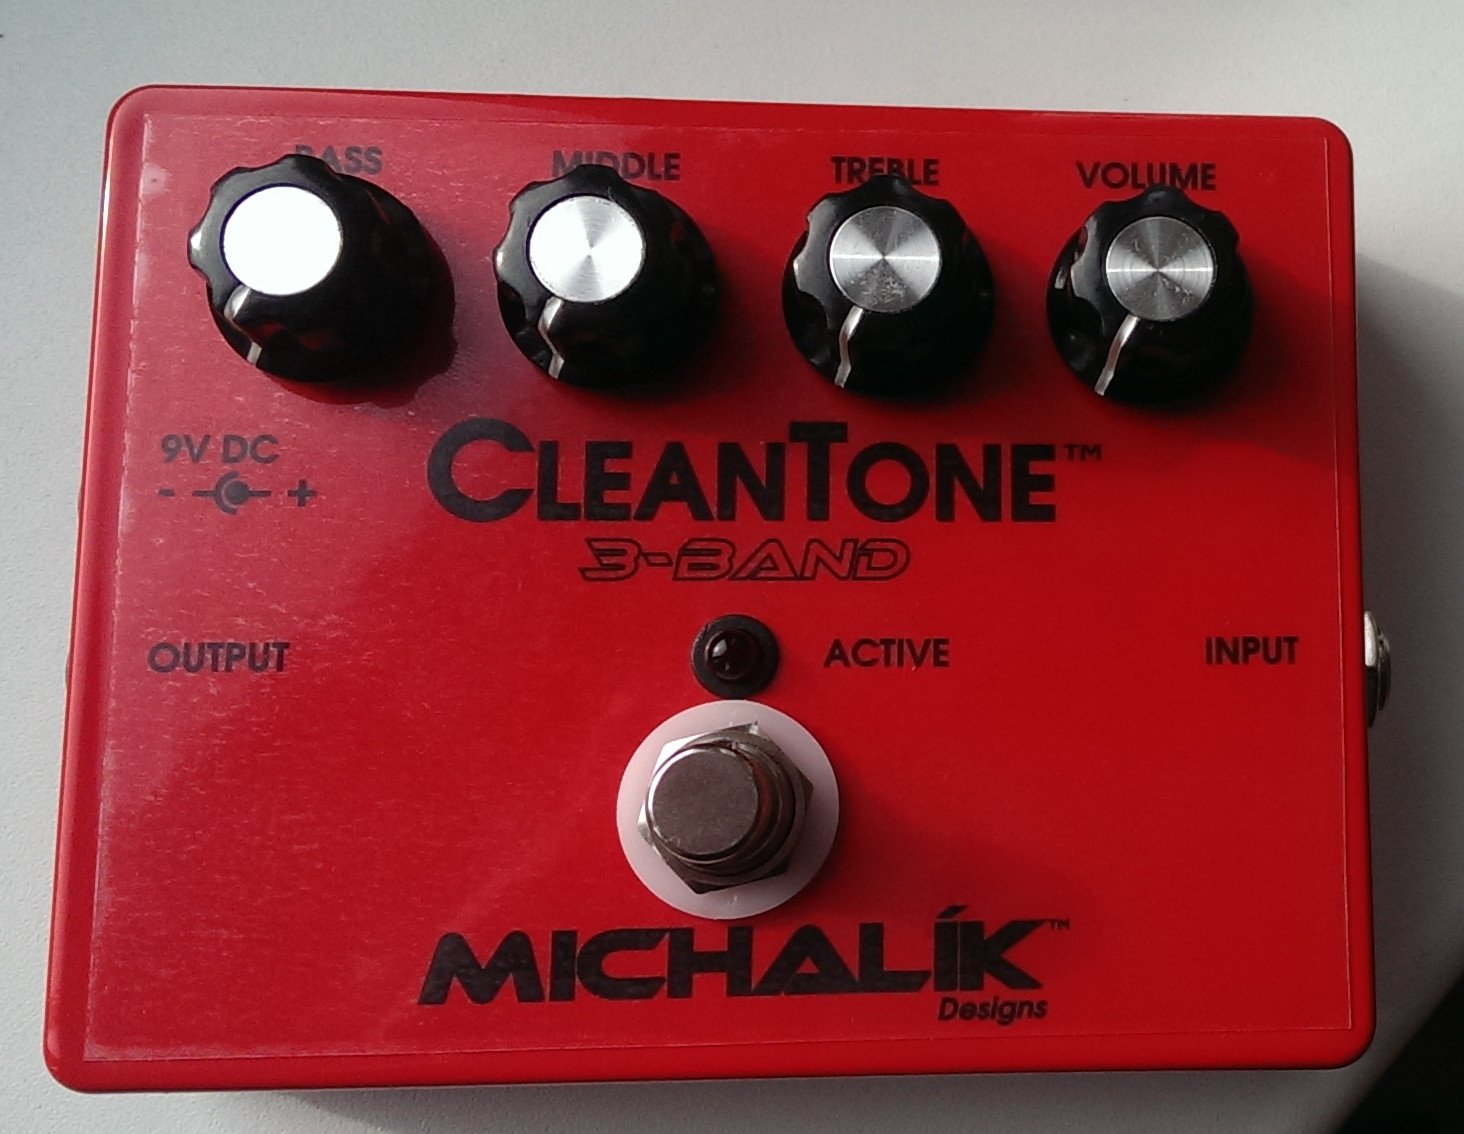 CleanTone - 3Band bass preamp